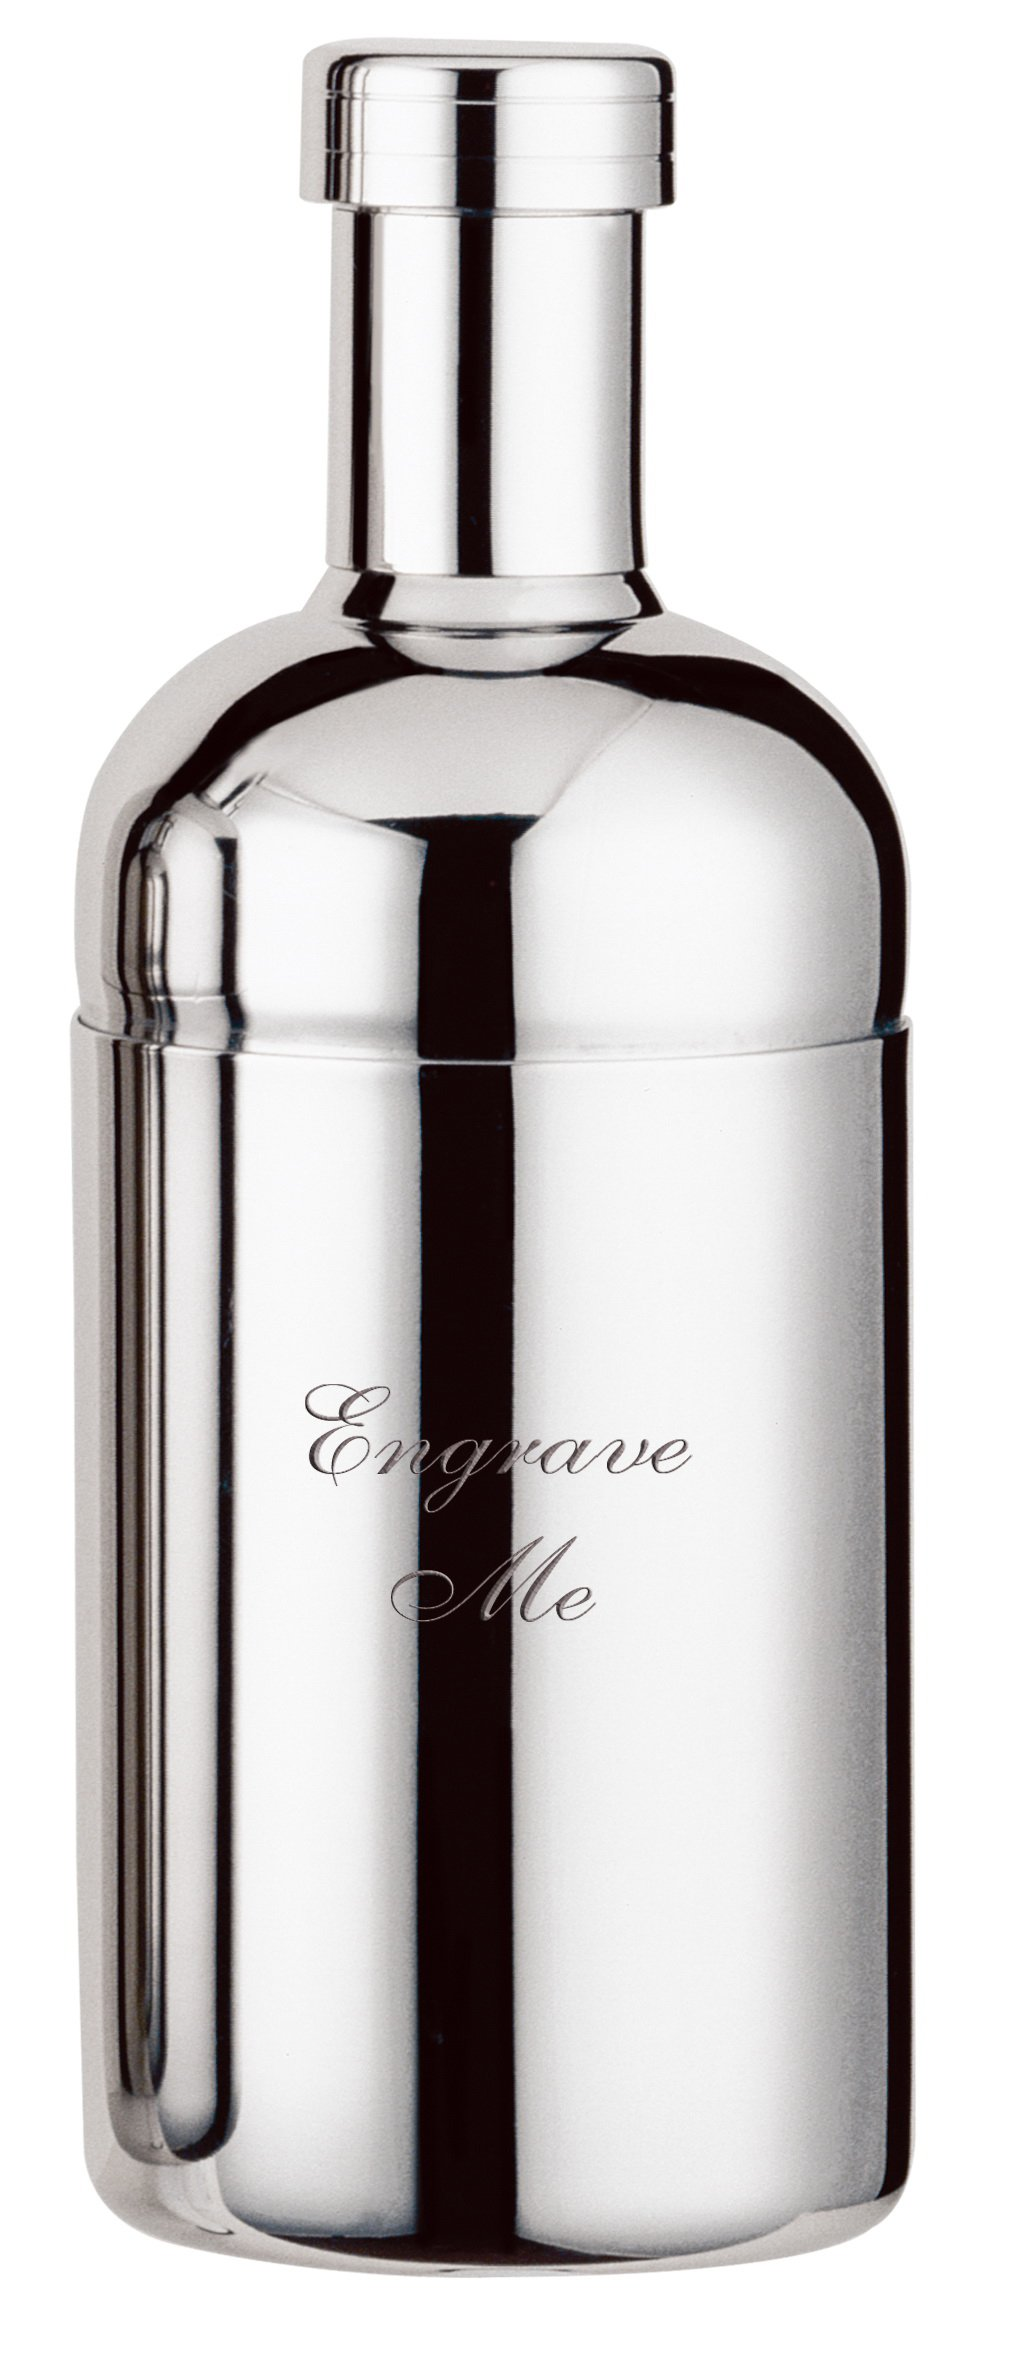 Personalized Cocktail Shaker with Free Engraving